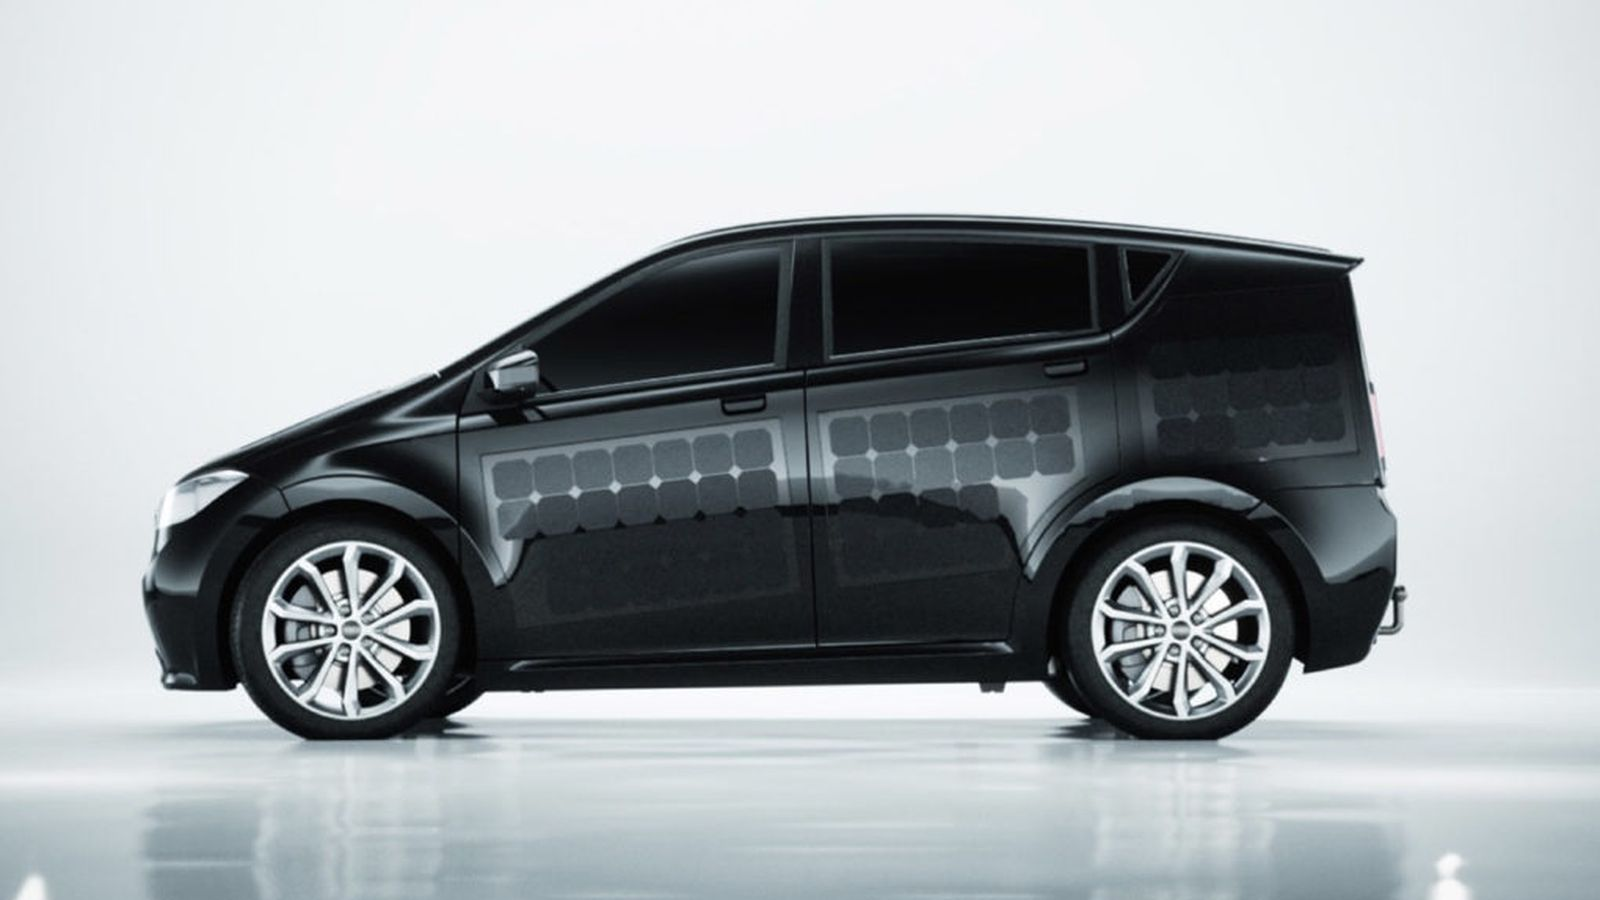 This $19,000 solar-powered car is ready for test drives